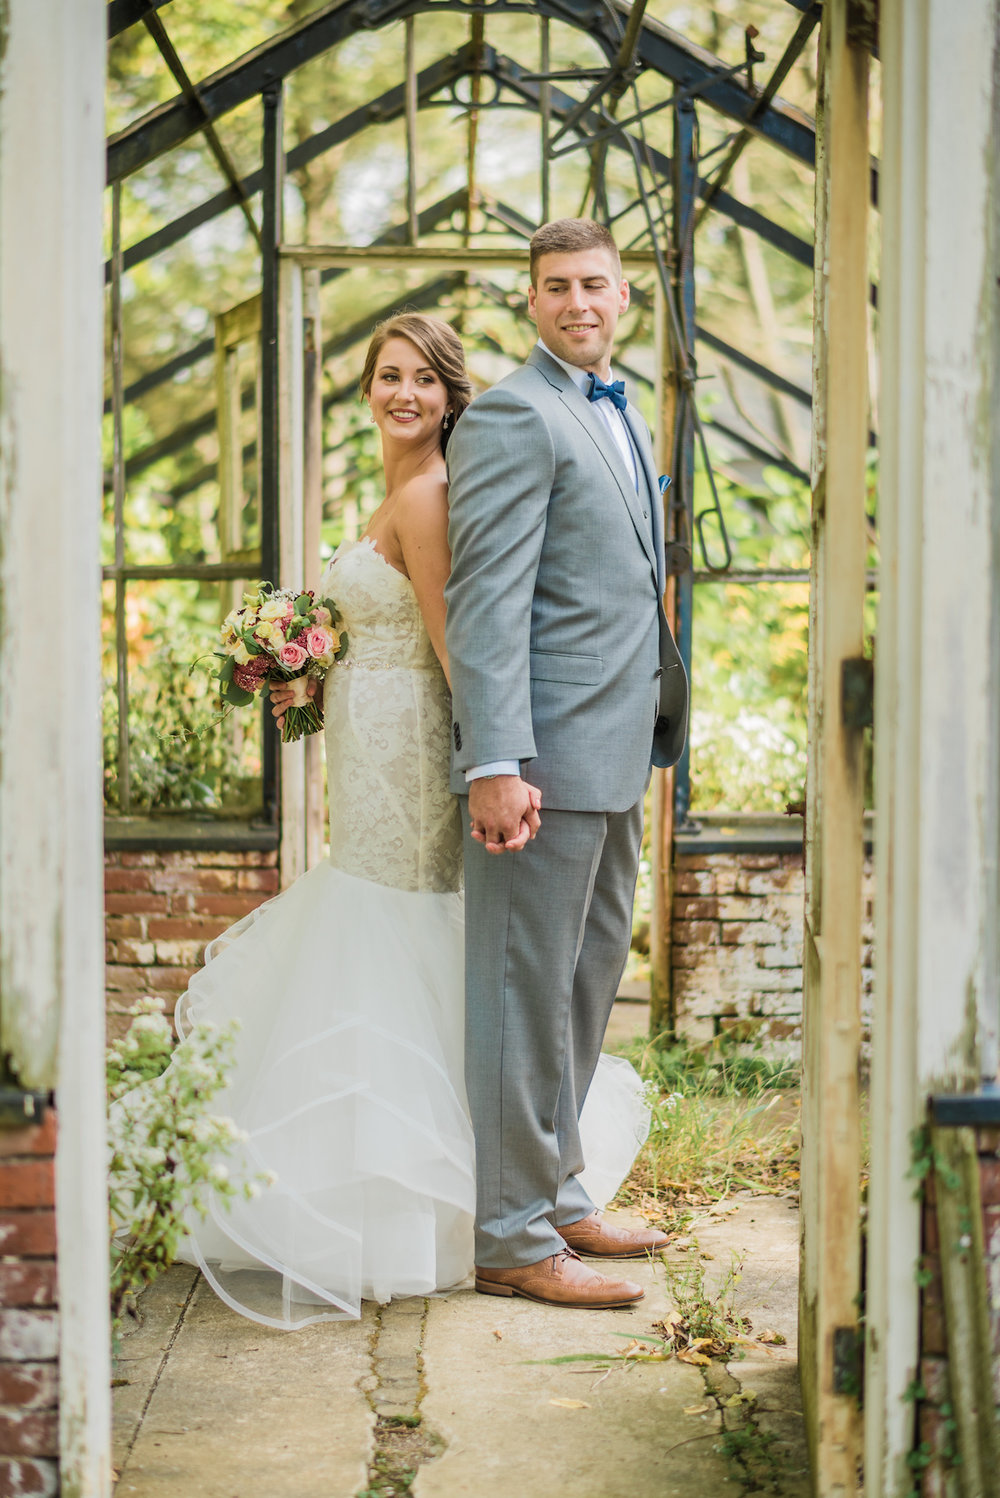 Gorgeous Lace Mermaid Wedding Dress - A Philander Chase Knox Estate Pennsylvania Wedding